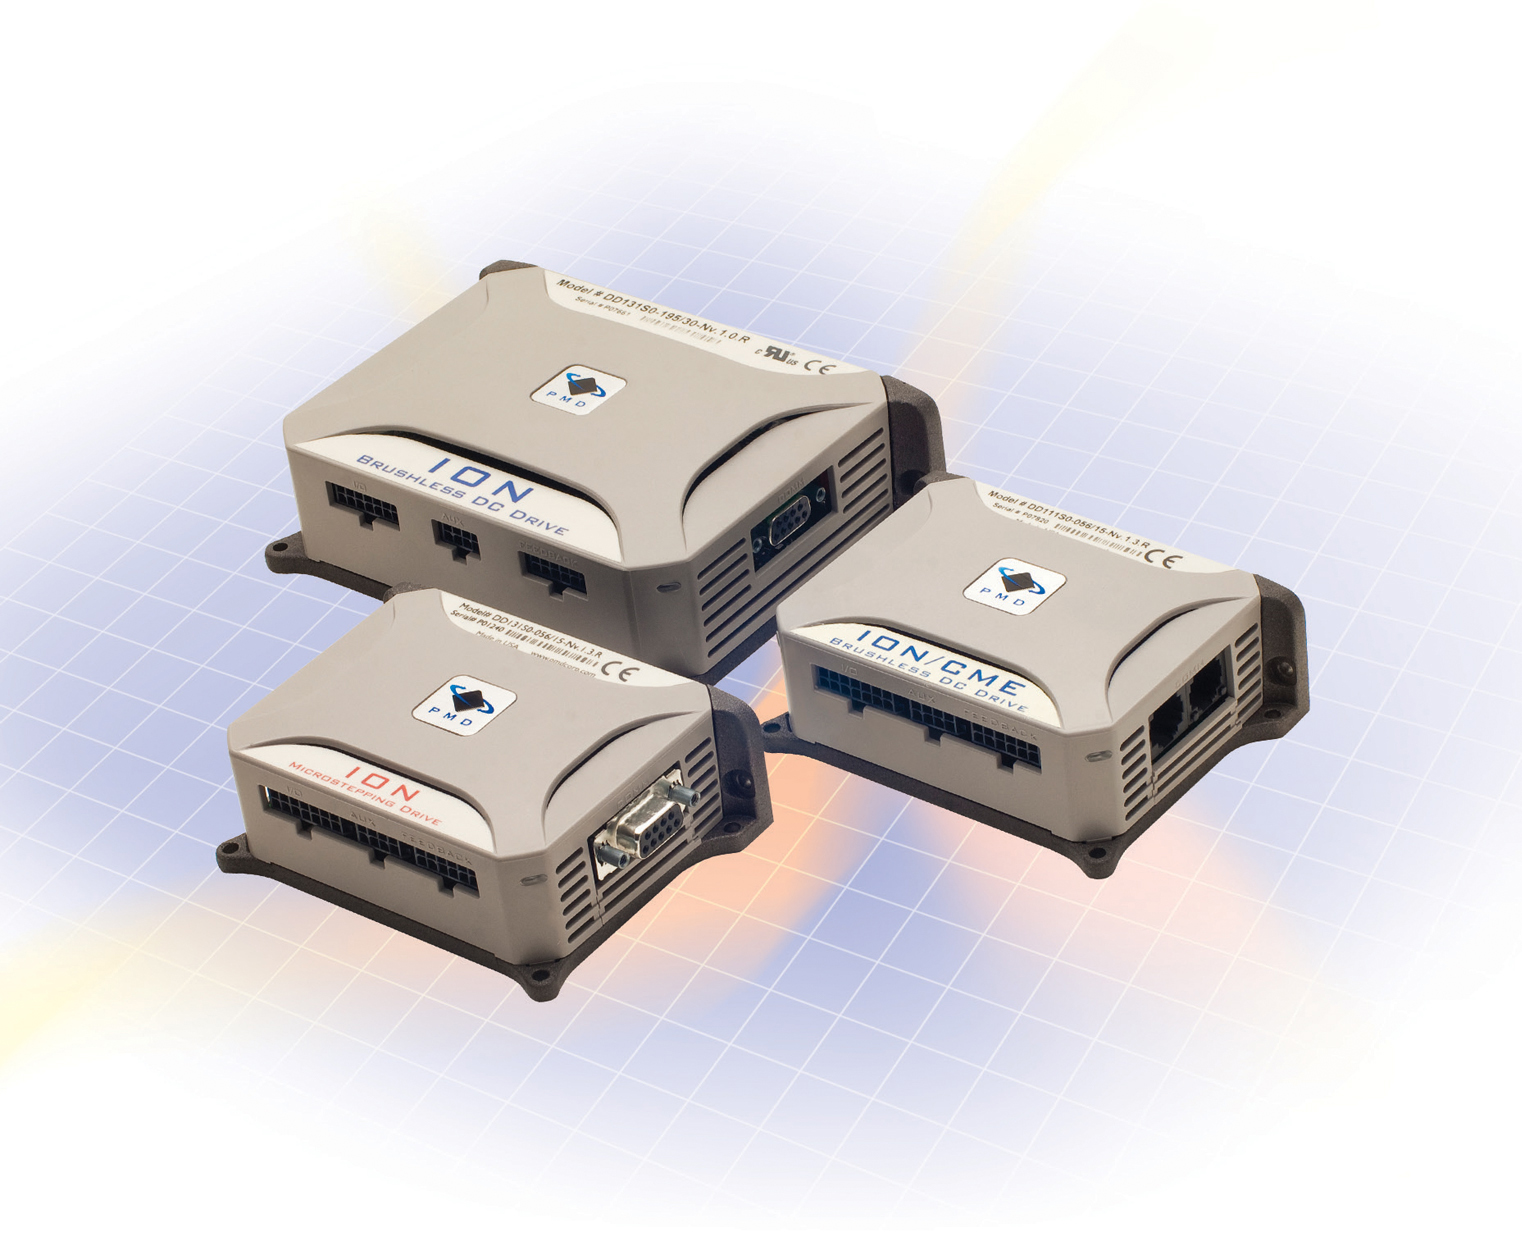 Advanced motion cards provide precise actuation on compact blood analyser